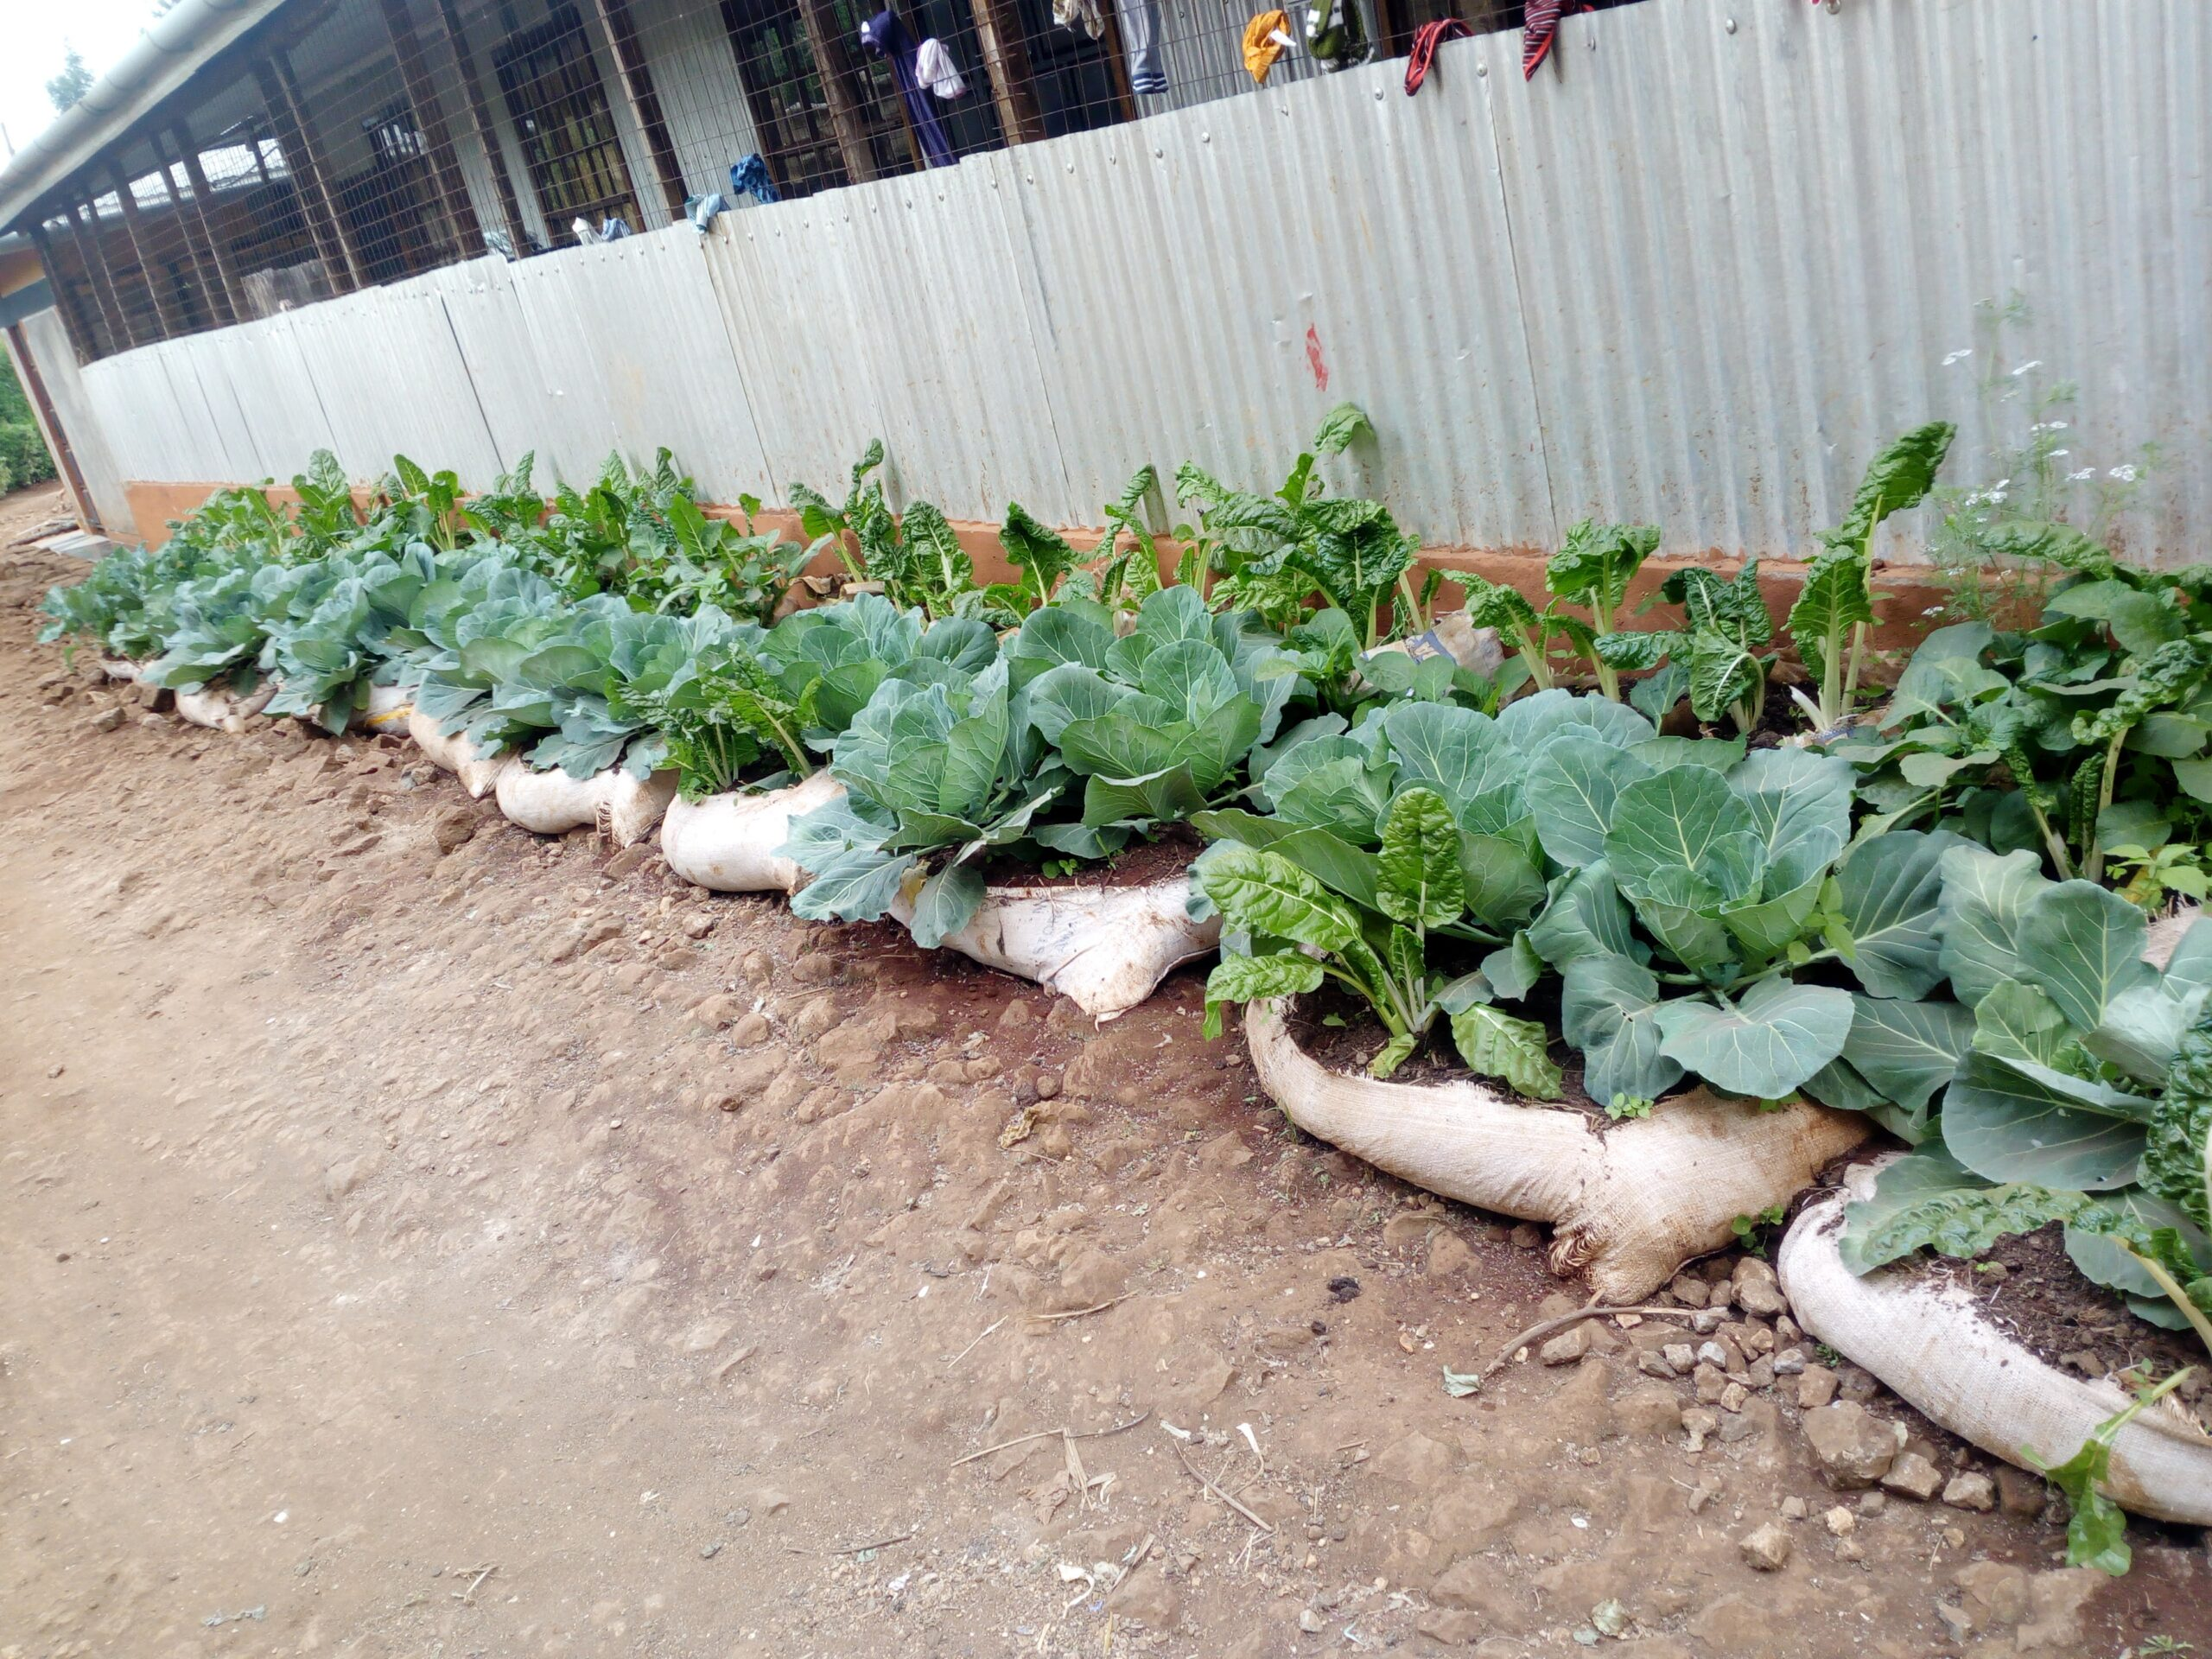 KITCHEN GARDENING BECOMES A SOURCE OF LIVELIHOOD FOR ORPHANAGES IN KENYA